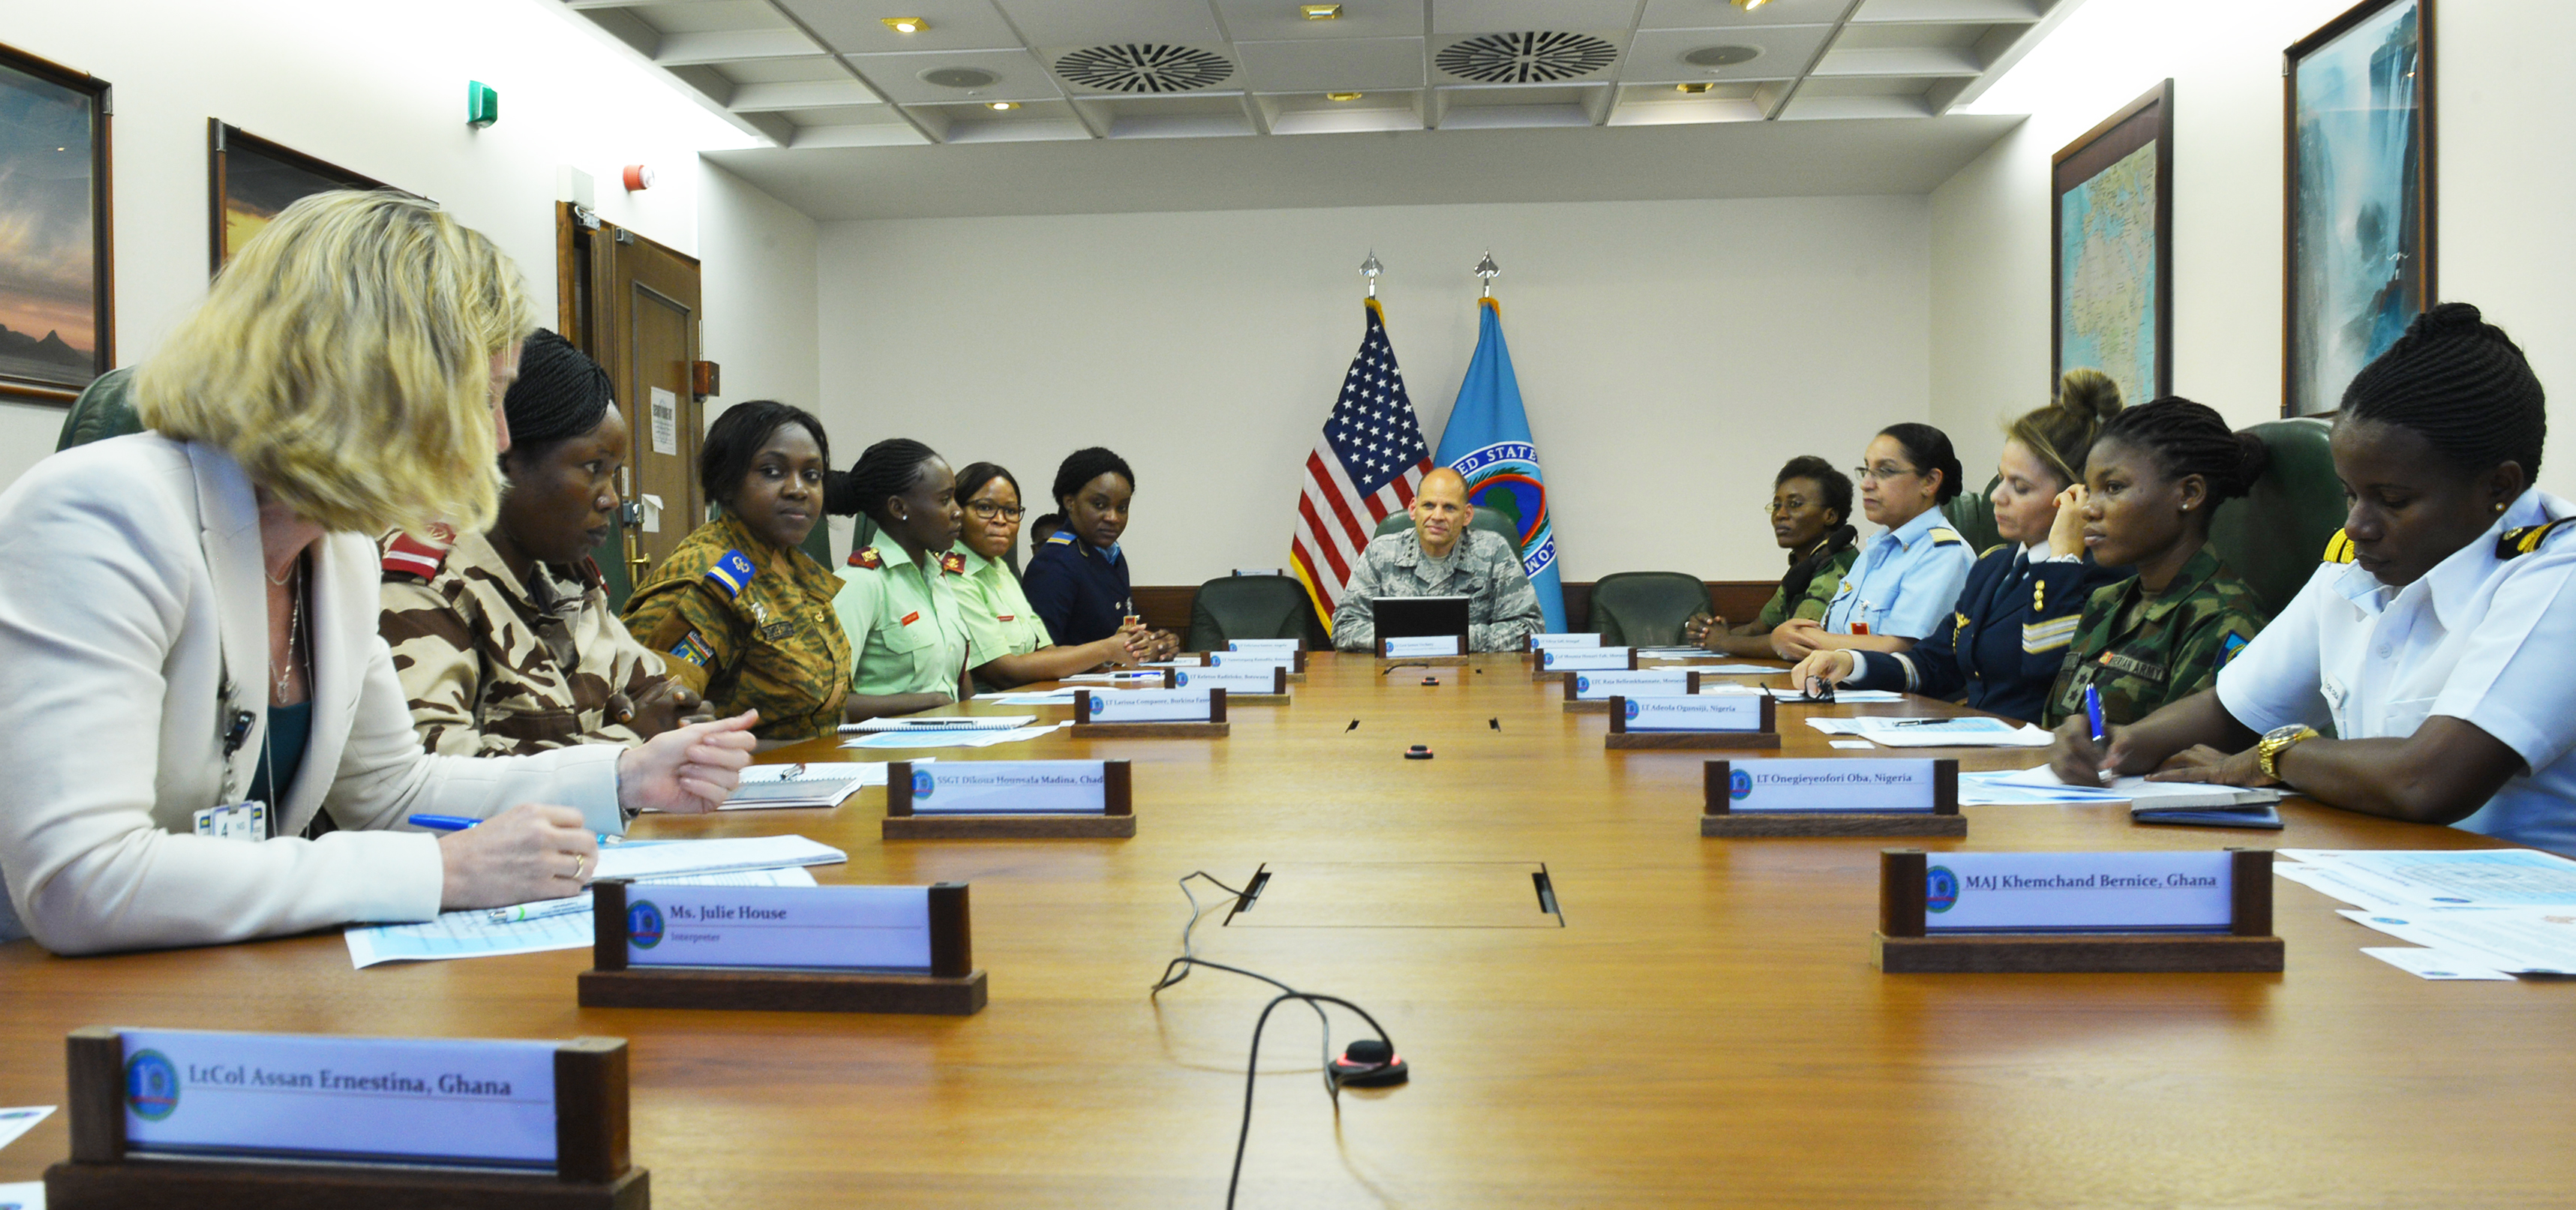 STUTTGART, Germany – Air Force Lt. Gen. James Vechery, Deputy to the Commander for Military Operations, U.S. Africa Command, speaks to attendees of the AFRICOM Women's Communication Symposium – 2018, at AFRICOM Headquarters, Kelly Barracks, June 25, 2018. The event hosted delegation of 14 women military signal communicators from African partner nations, under the command's Women's Military-to-Military Engagement Program. (Photo by Army Staff Sgt. Grady Jones, AFRICOM Public Affairs)